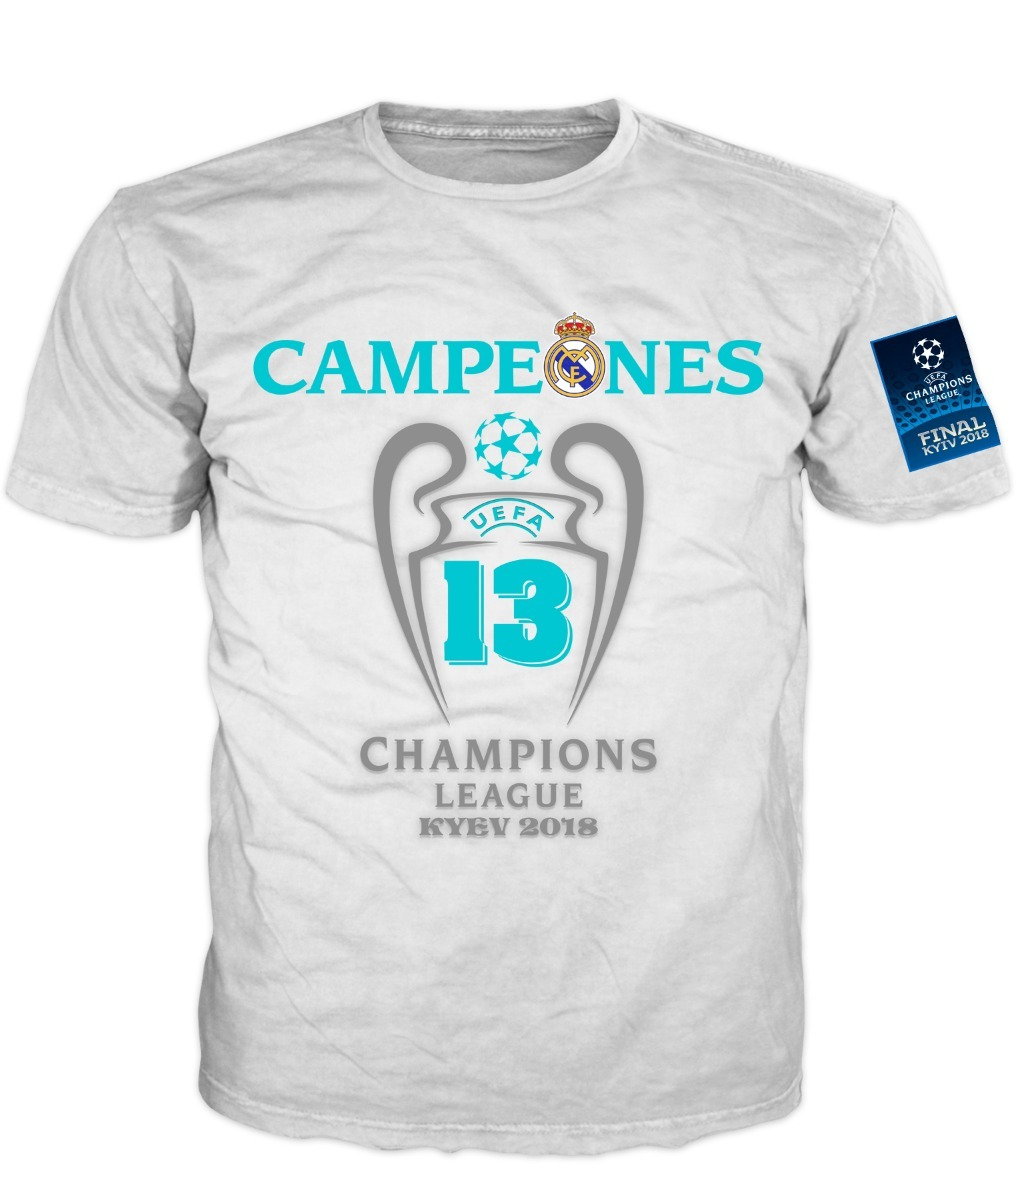 Playera Real Madrid Campeon Champions League 2018 Blanca -   300.00 ... 946f57c3ab6ba